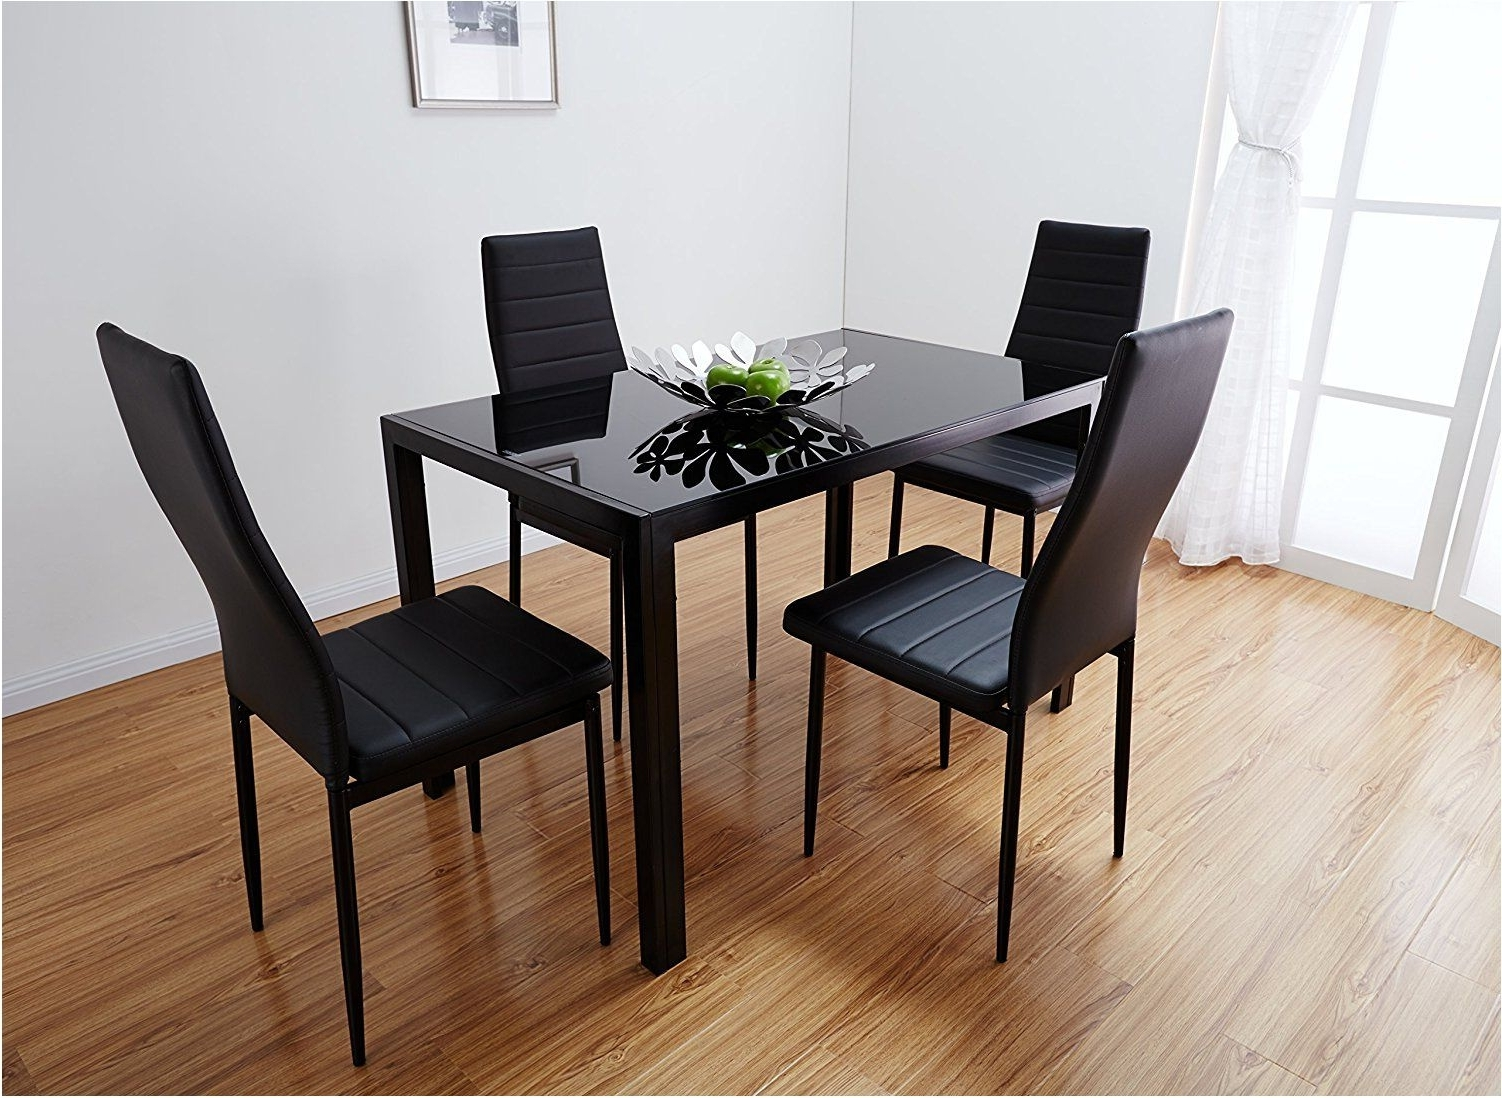 Black Glass Dining Tables And 4 Chairs Throughout Popular Nice Black Glass Dining Table Set With 4 Faux Leather Chairs Brand (View 7 of 25)